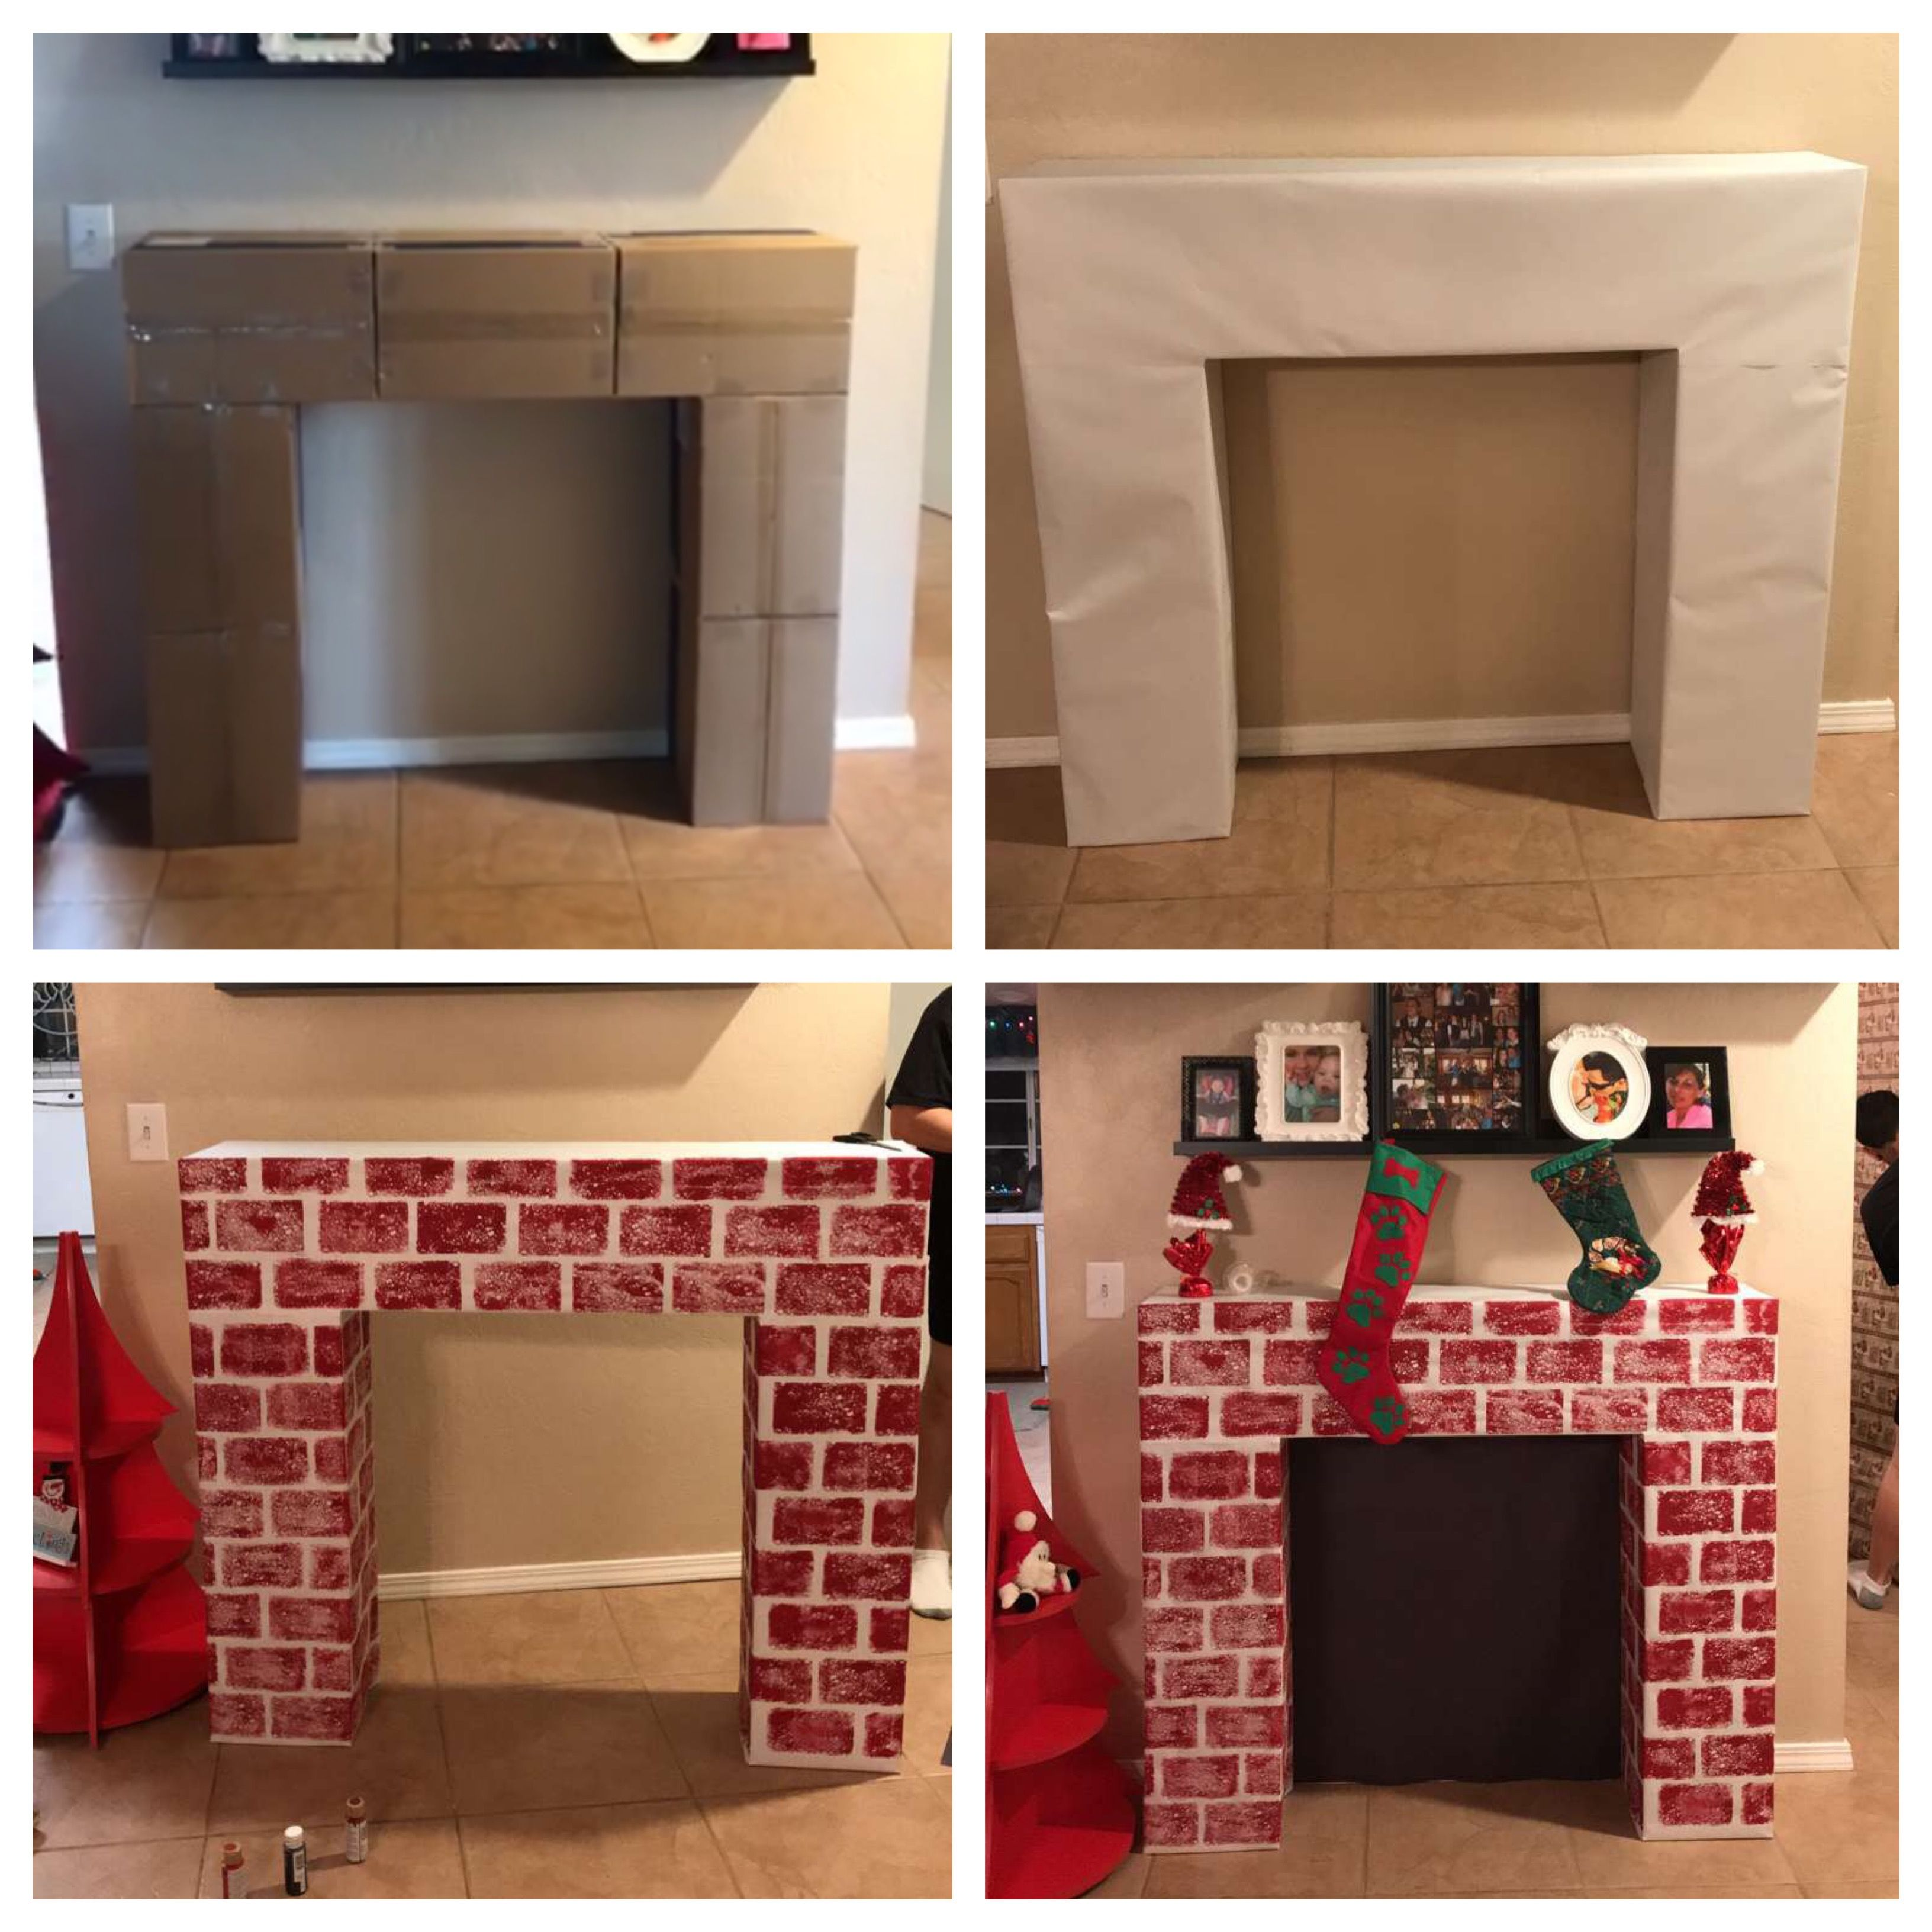 DIY fireplace made out of cardboard boxes and painted